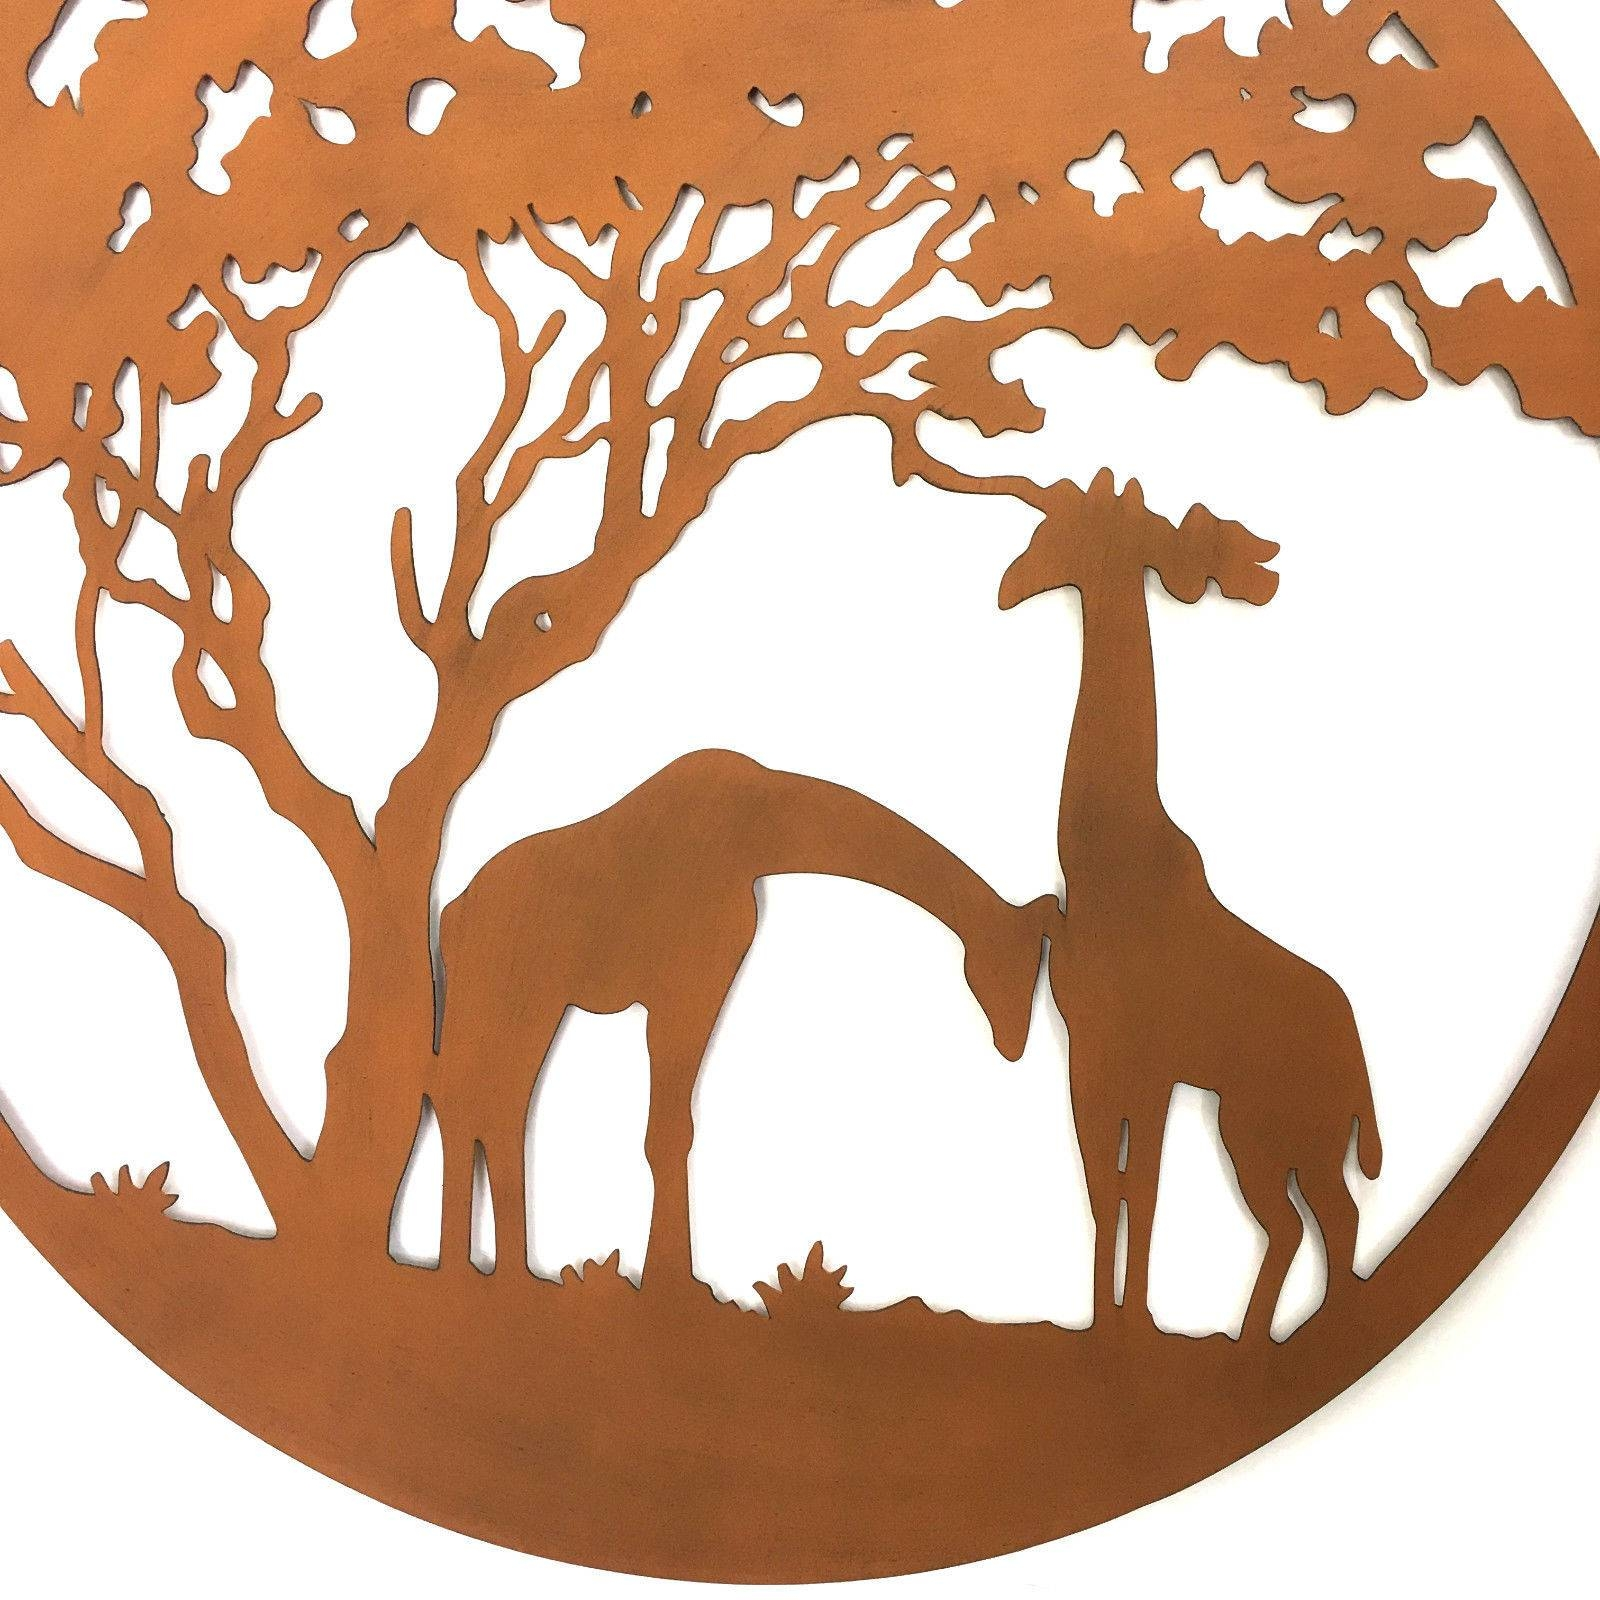 Giraffe Lasercut Metal Wall Art 99Cm Regarding Most Popular Giraffe Metal Wall Art (View 8 of 20)